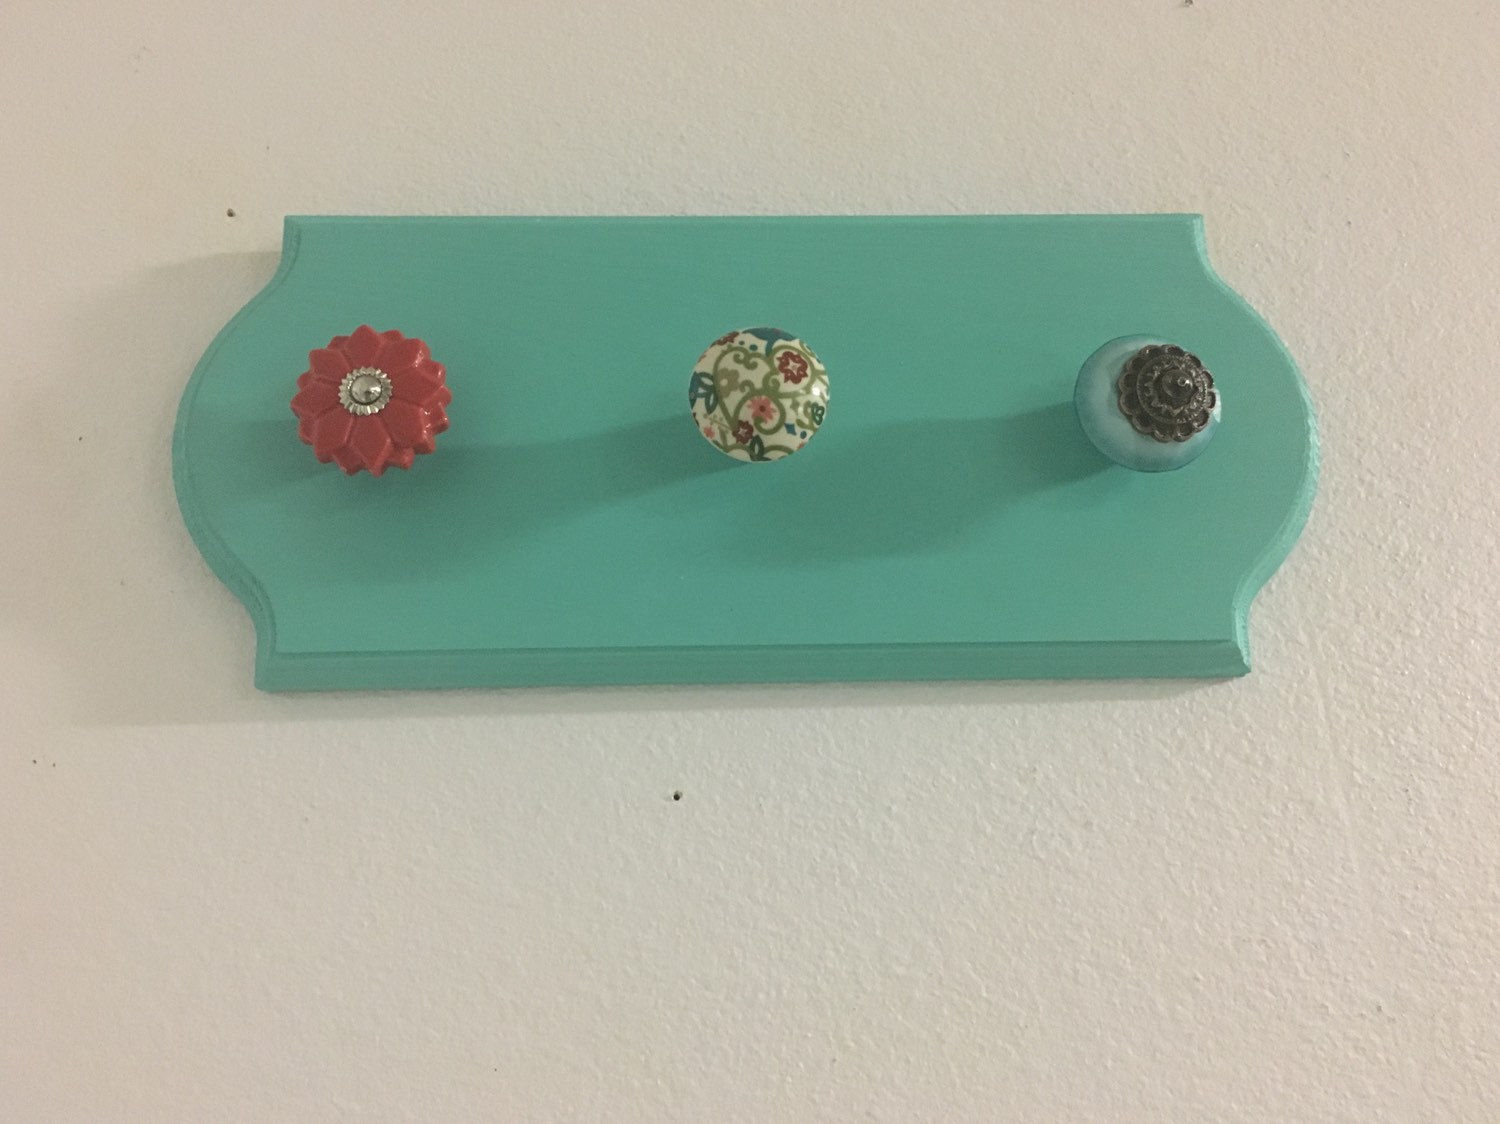 Gorgeous plaque painted in mint aqua color, and three knobs added in a creative way to make together a jewelry necklace holder.